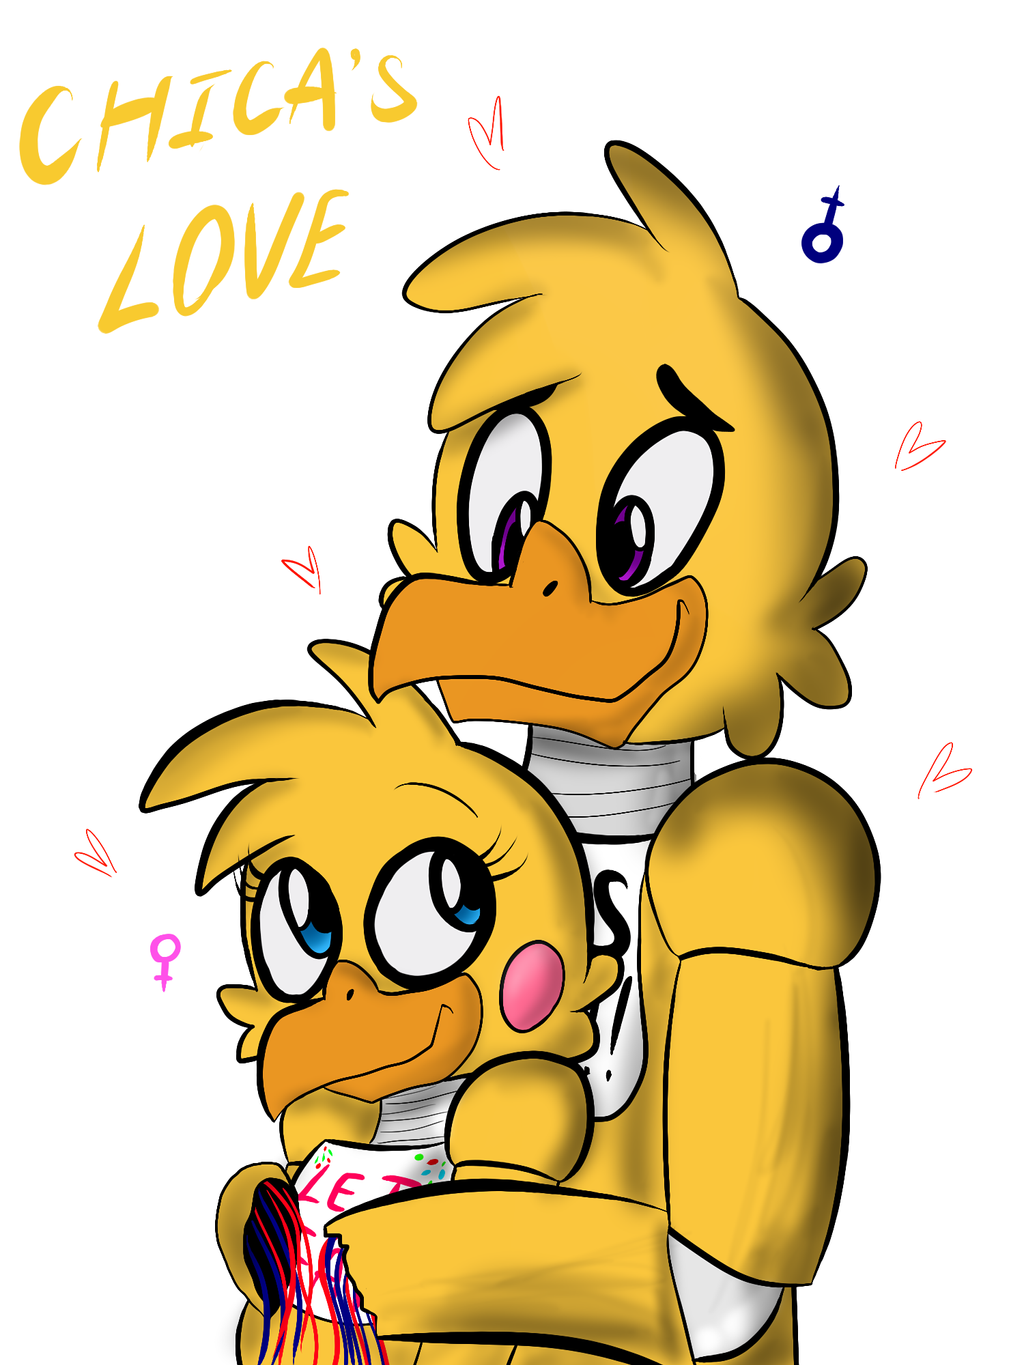 X chica